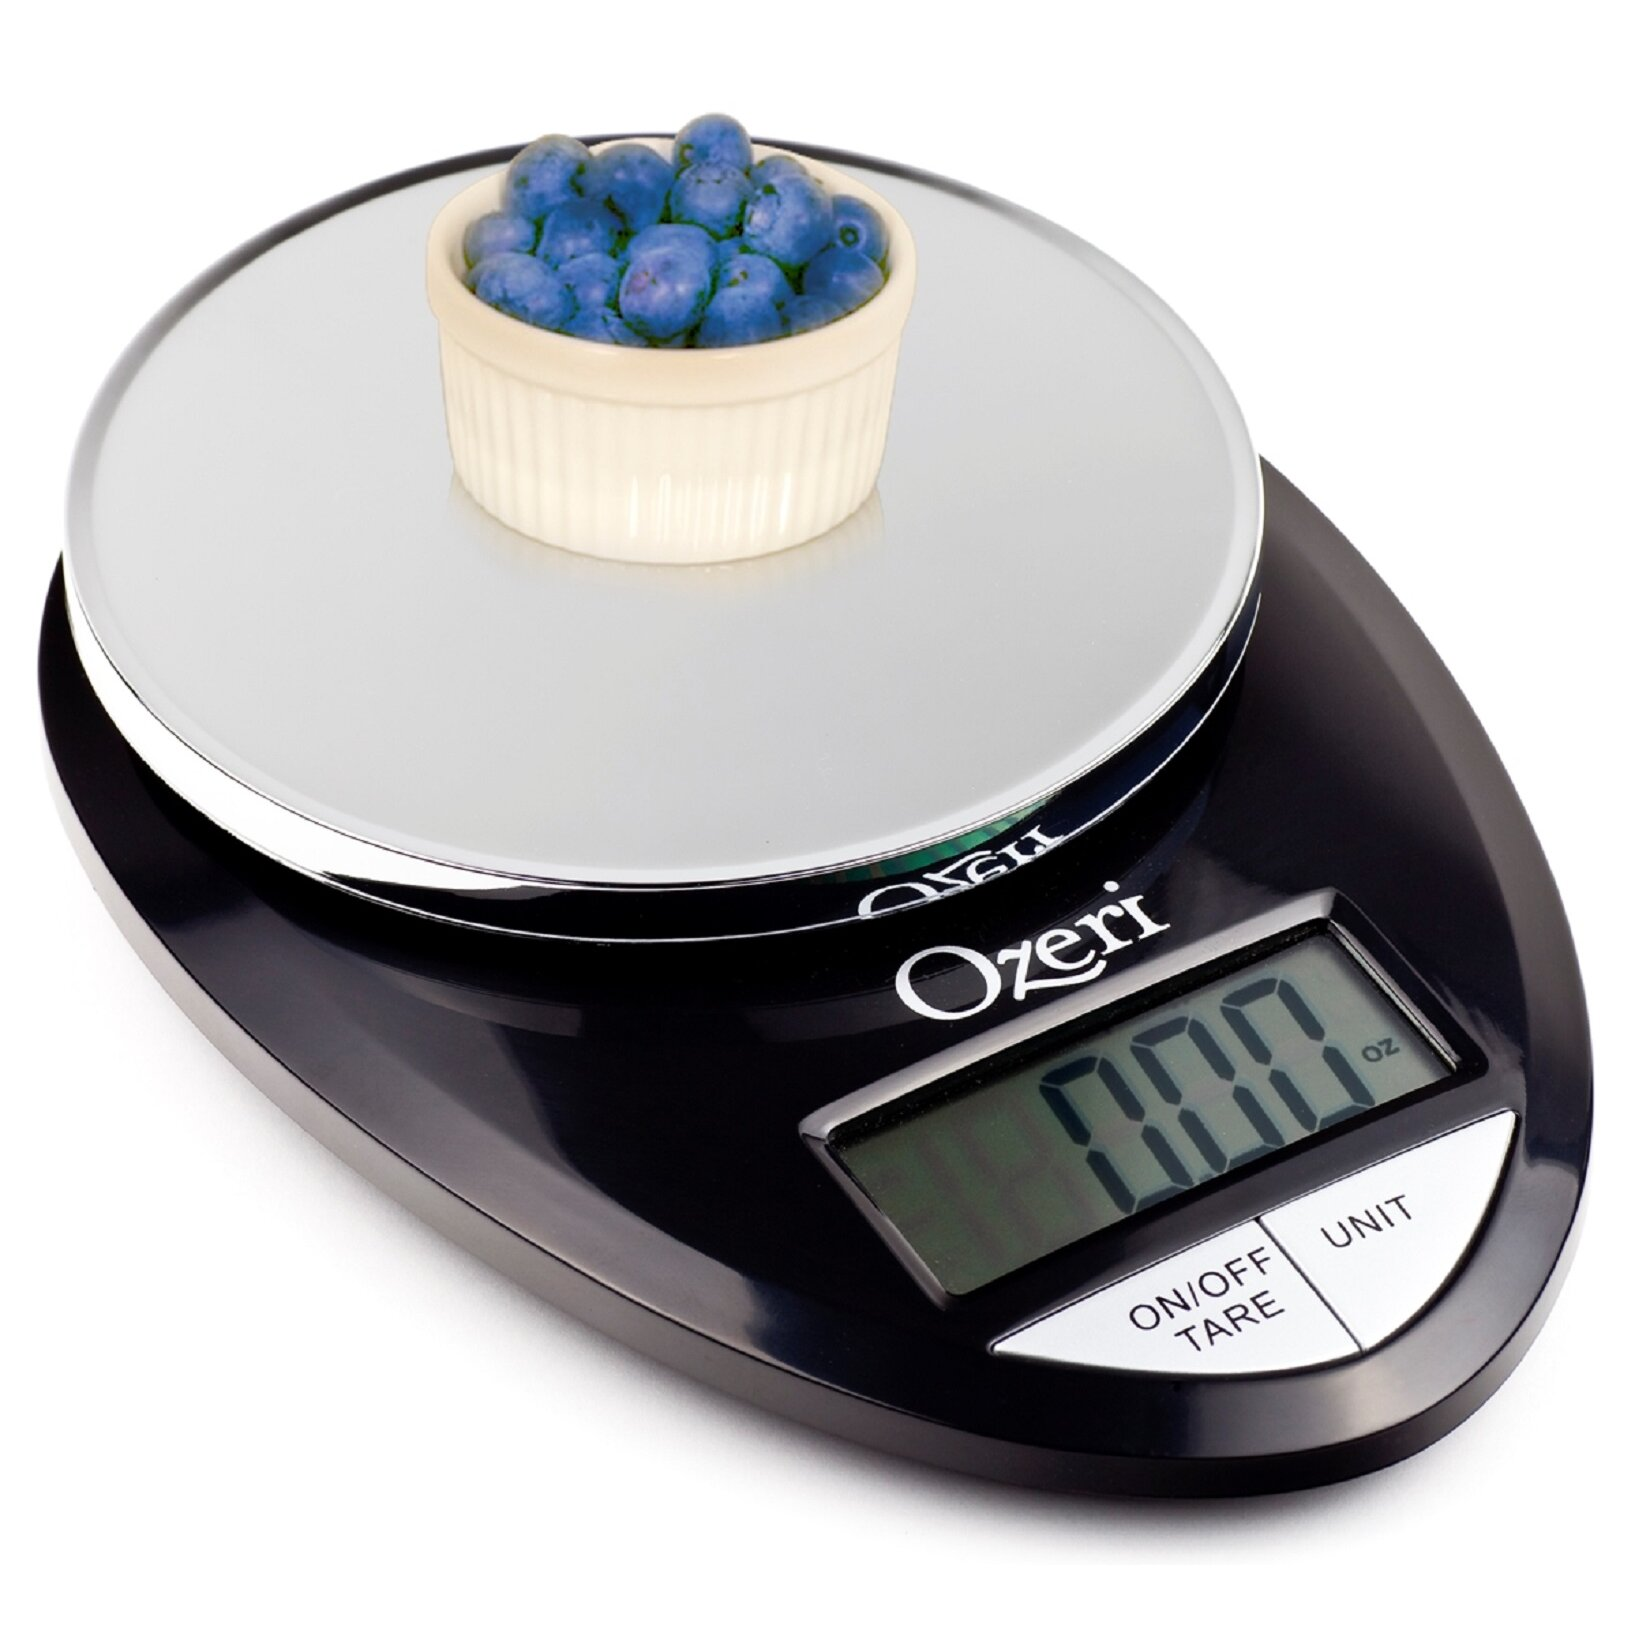 Ozeri Pro 12 Lbs Digital Kitchen And Food Scale & Reviews